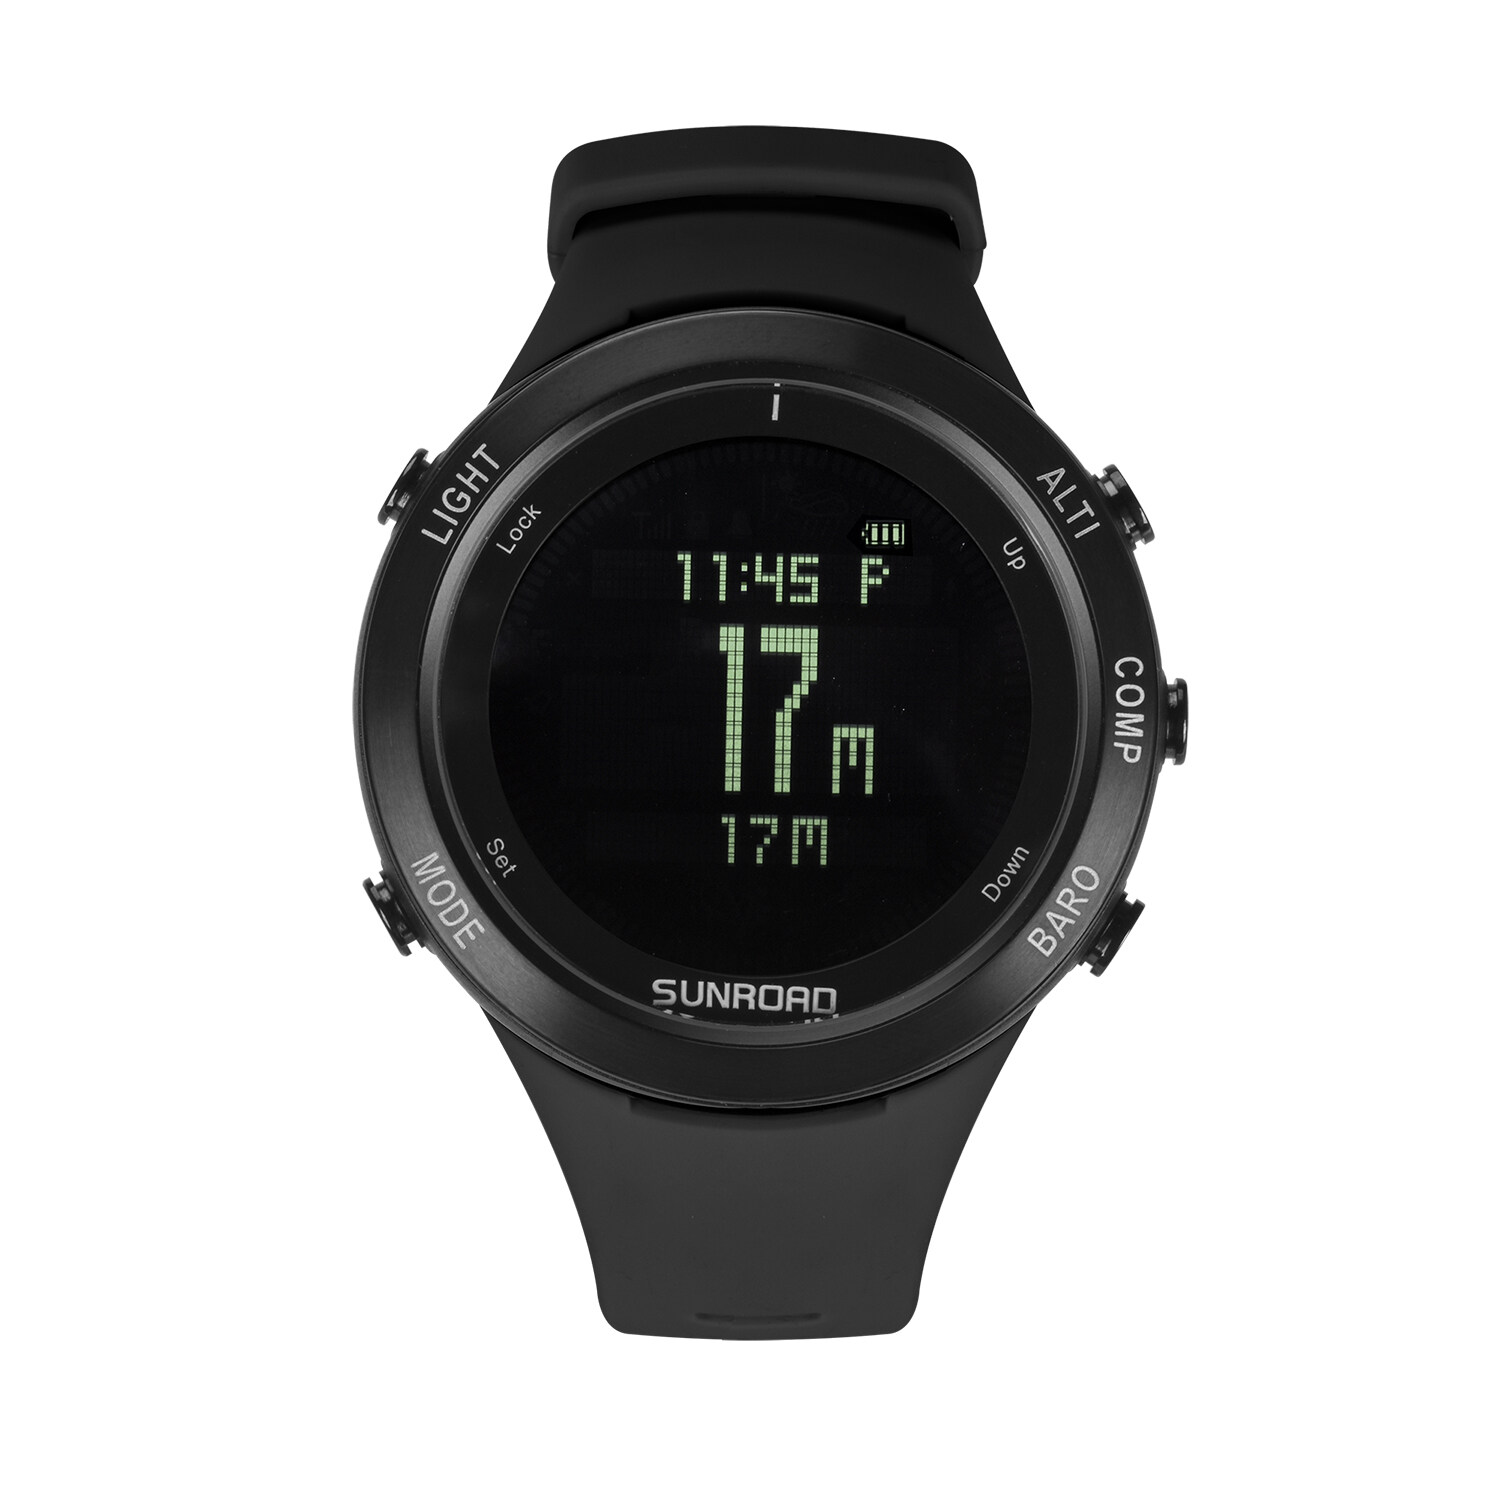 Sunroad heart rate outdoor sports watch with Pedometer, altimeter, climb data, hiking, camping, traveling watch waterproof 5